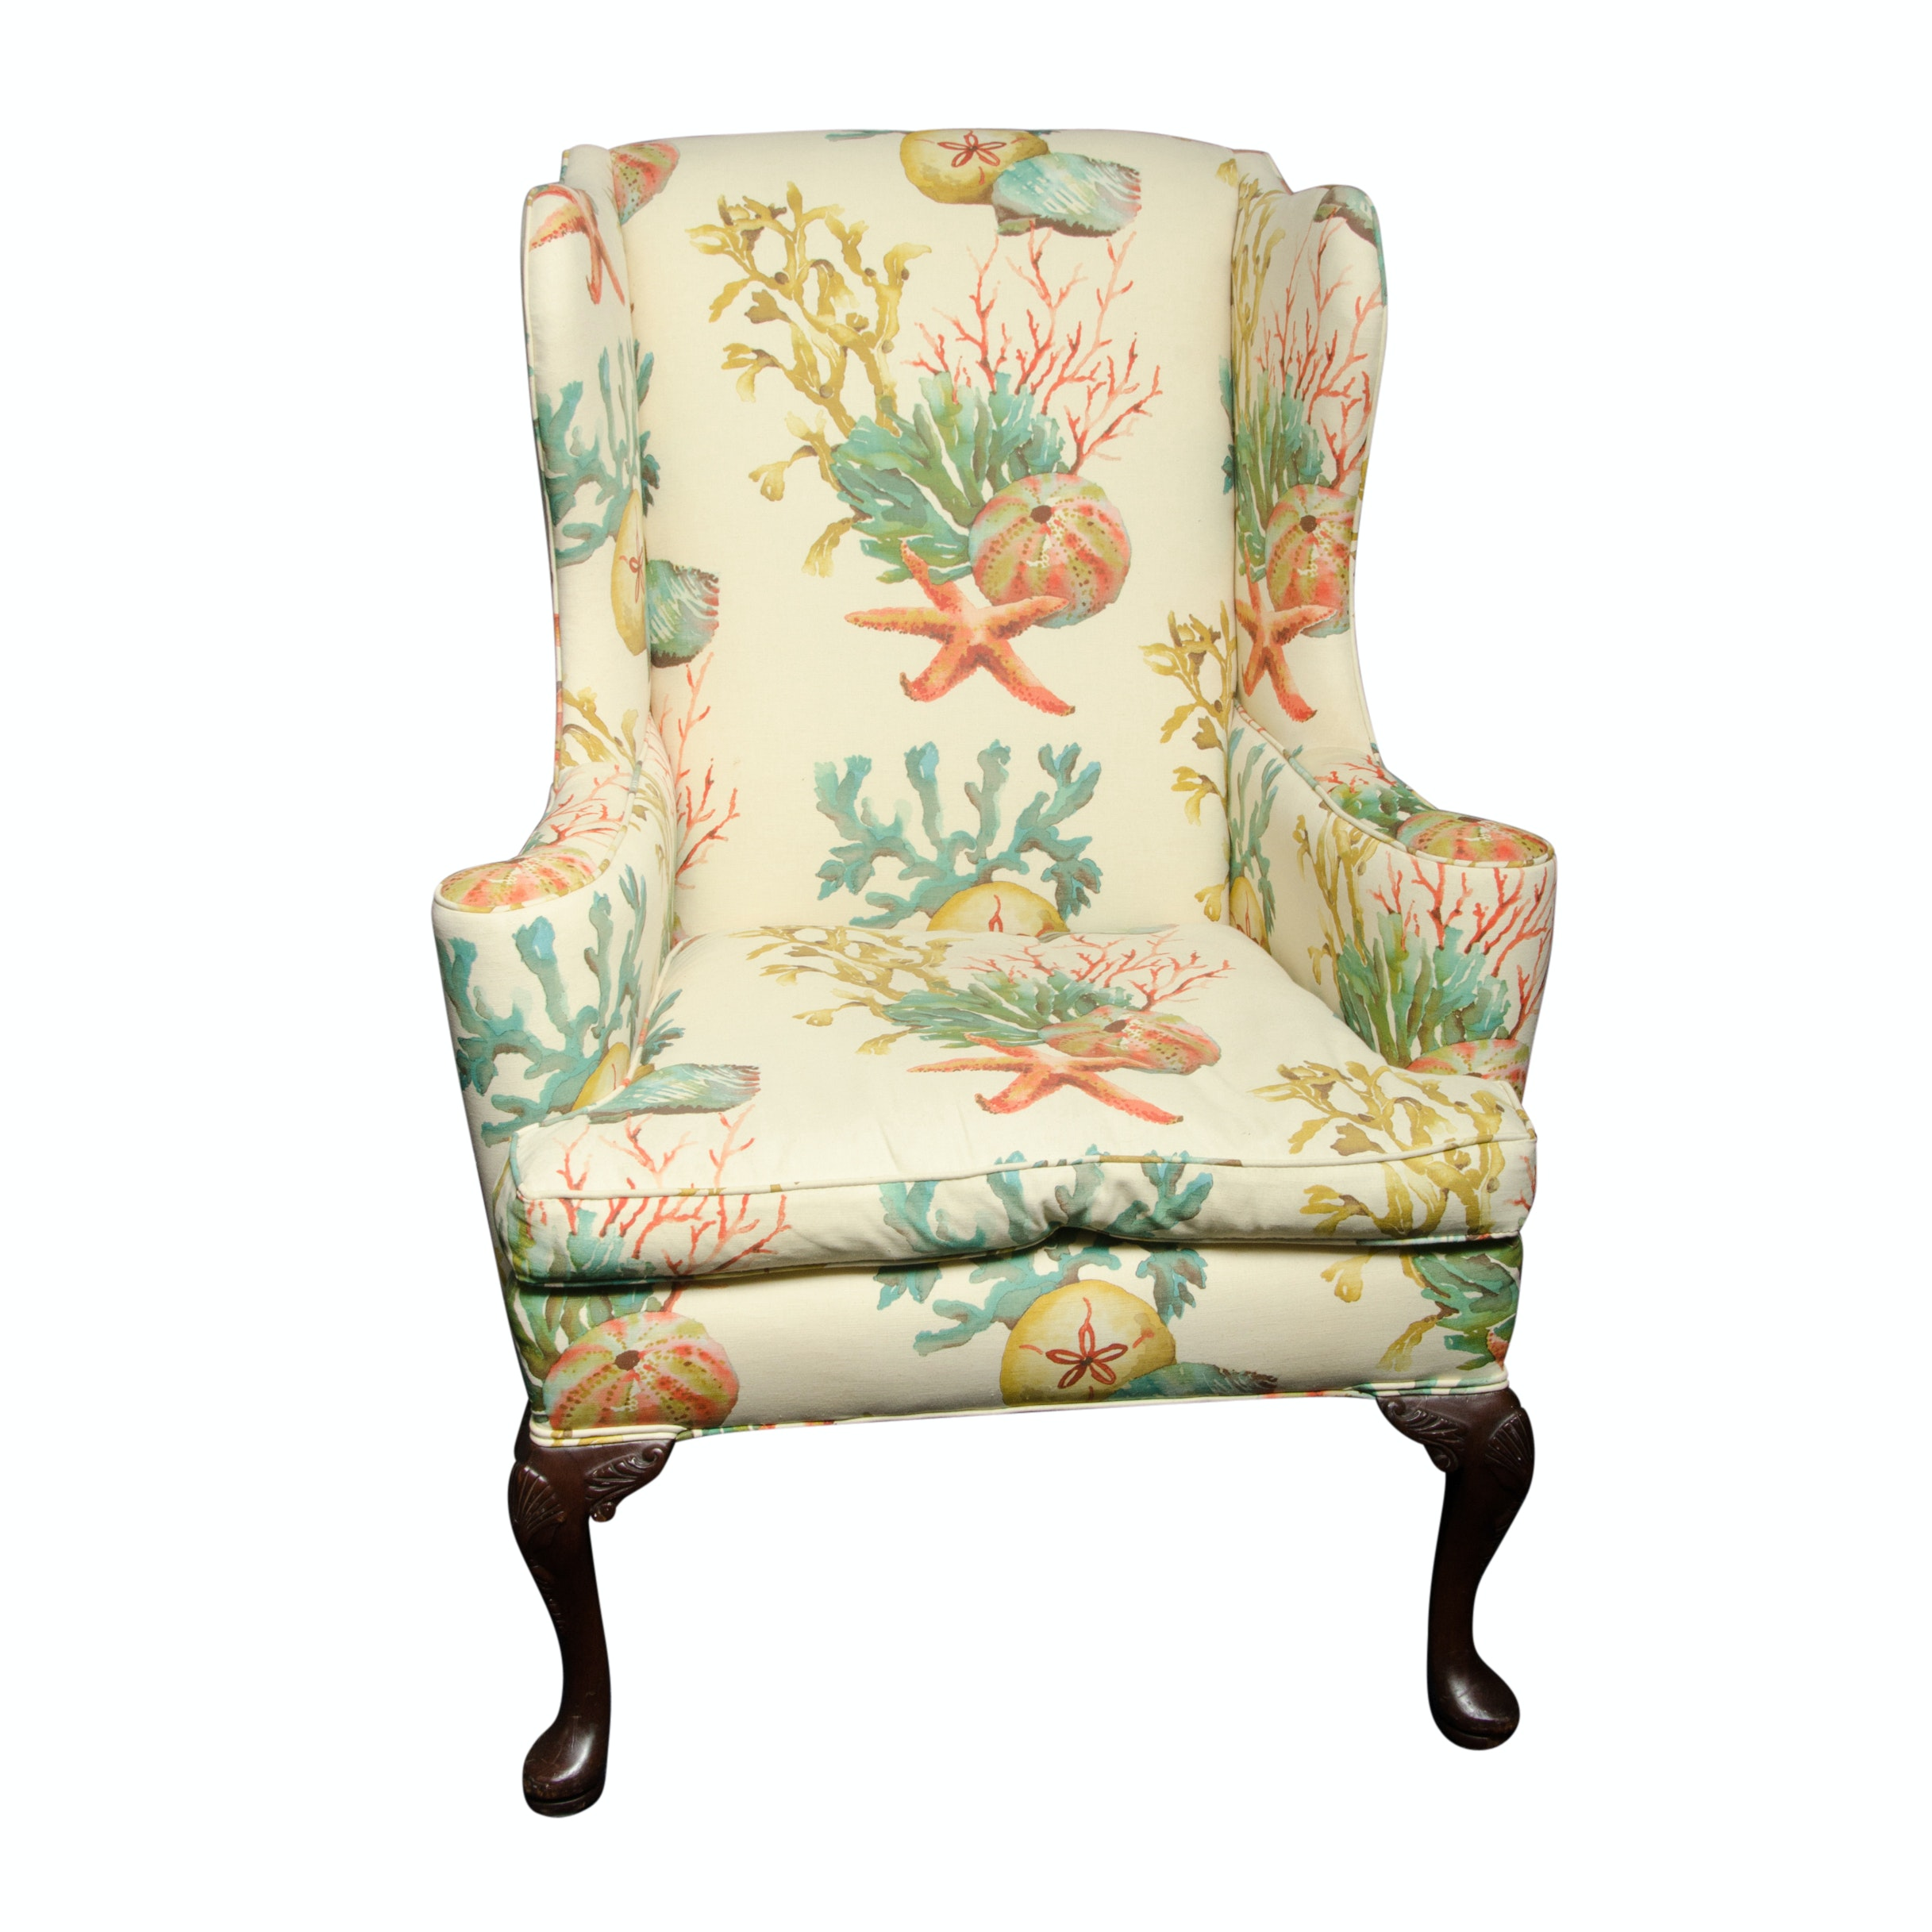 Queen Anne Style Upholstered Wingback Chair